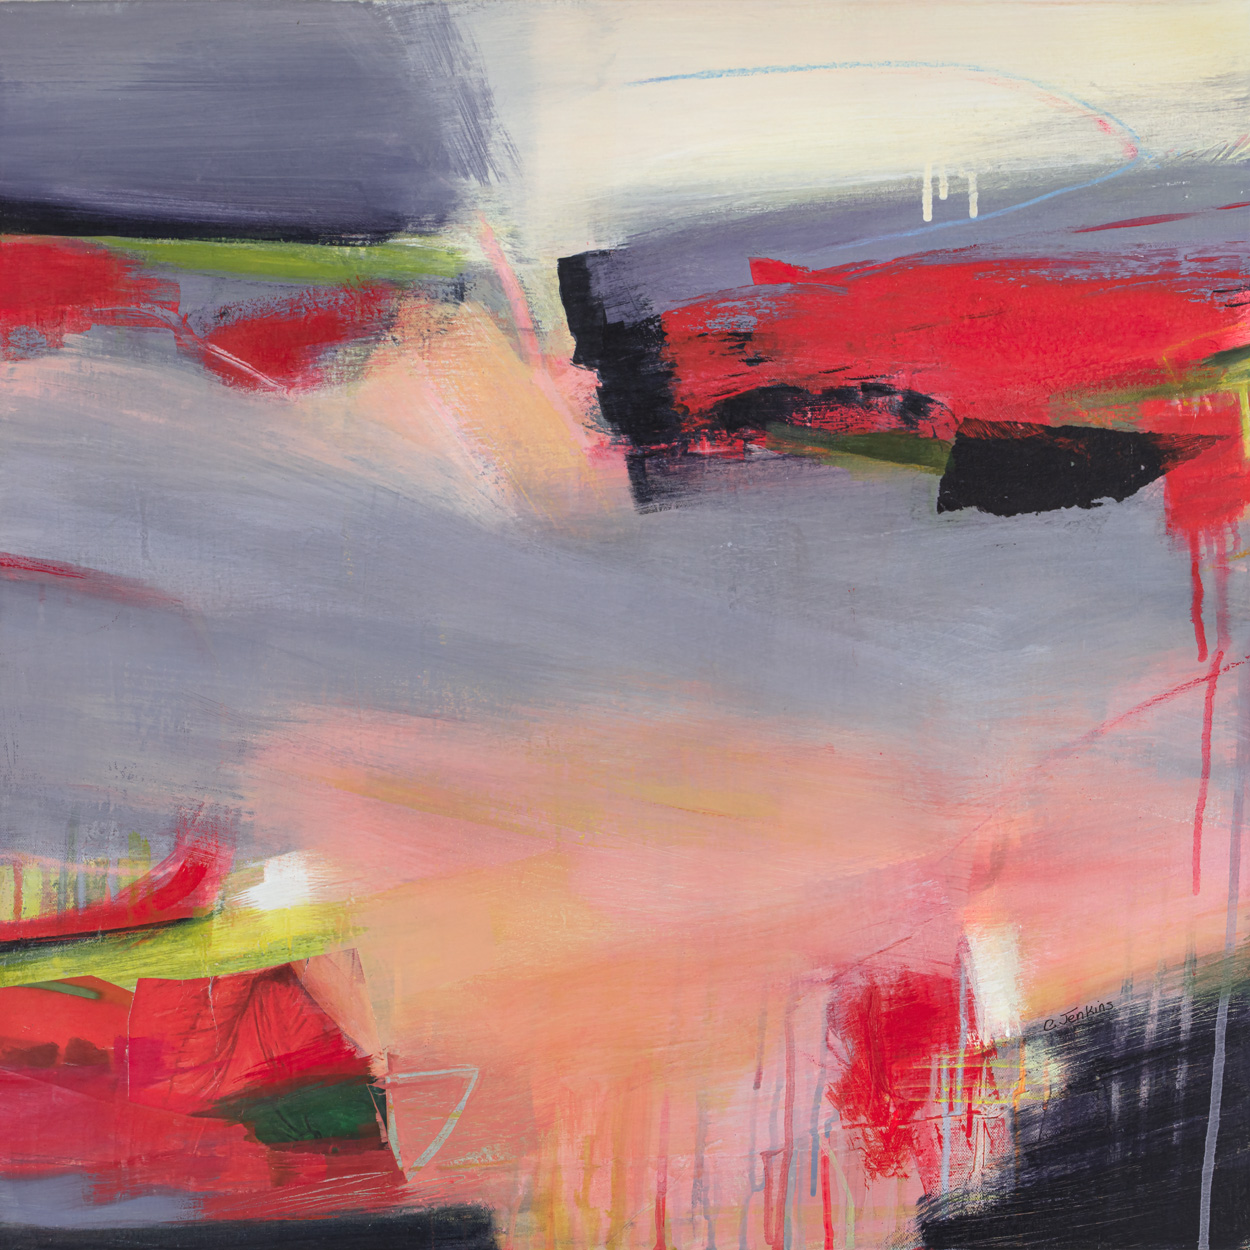 Carol Jenkins Confetti Sunset is an abstract landscape in greys, pinks and reds with strong diagonal movement.